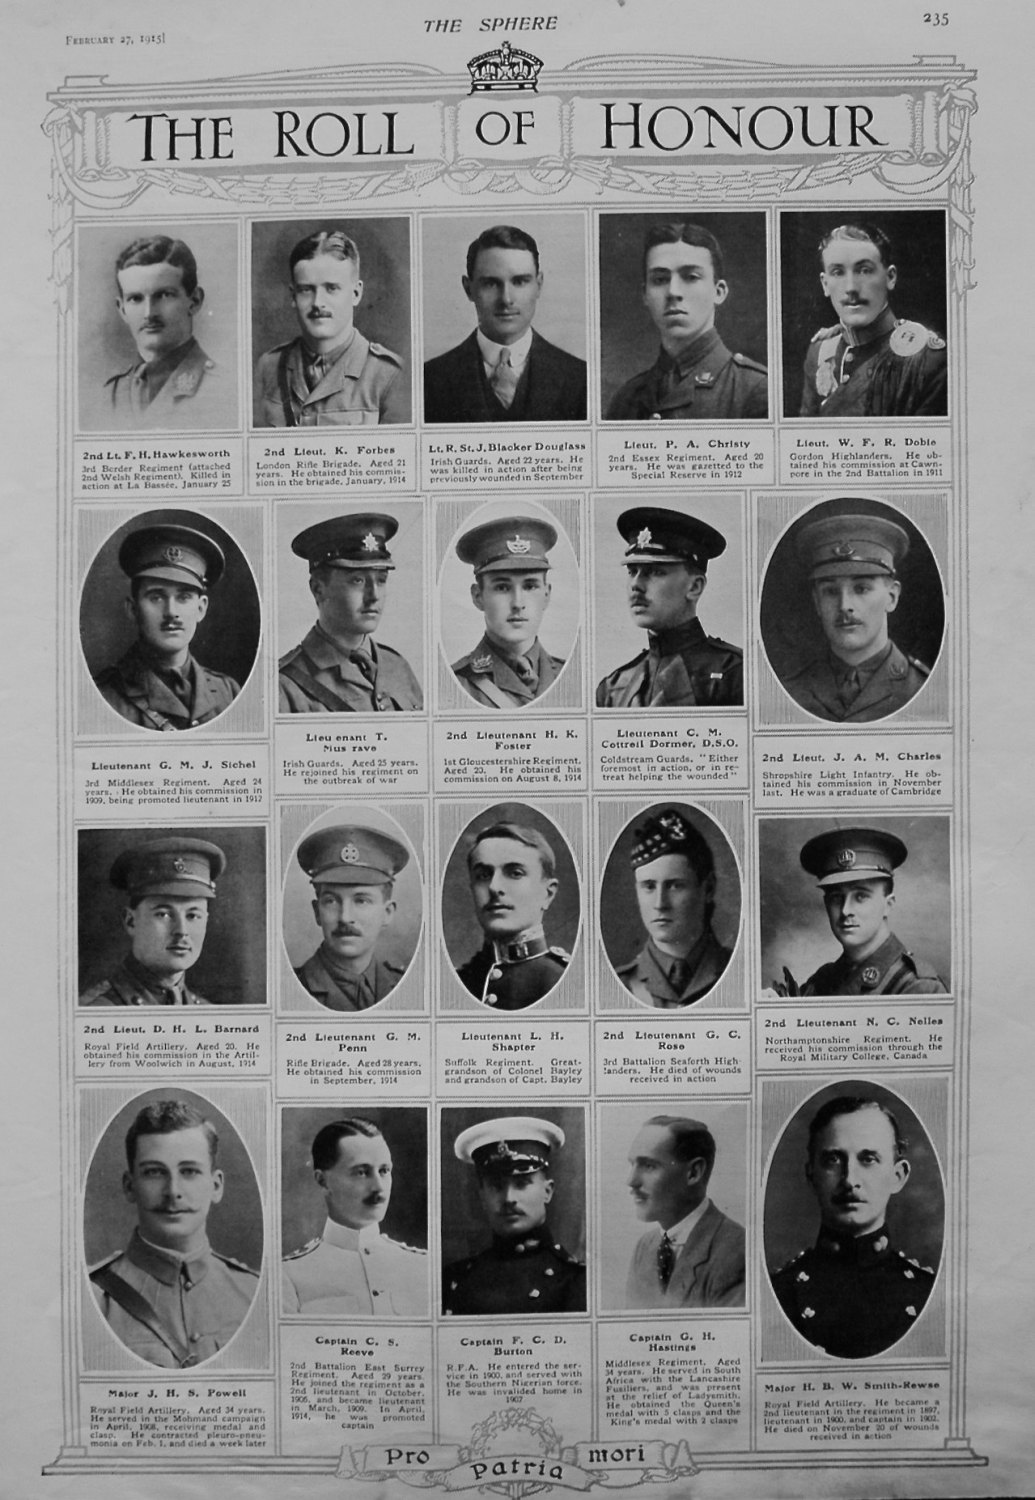 The Roll of Honour. February 27th, 1915